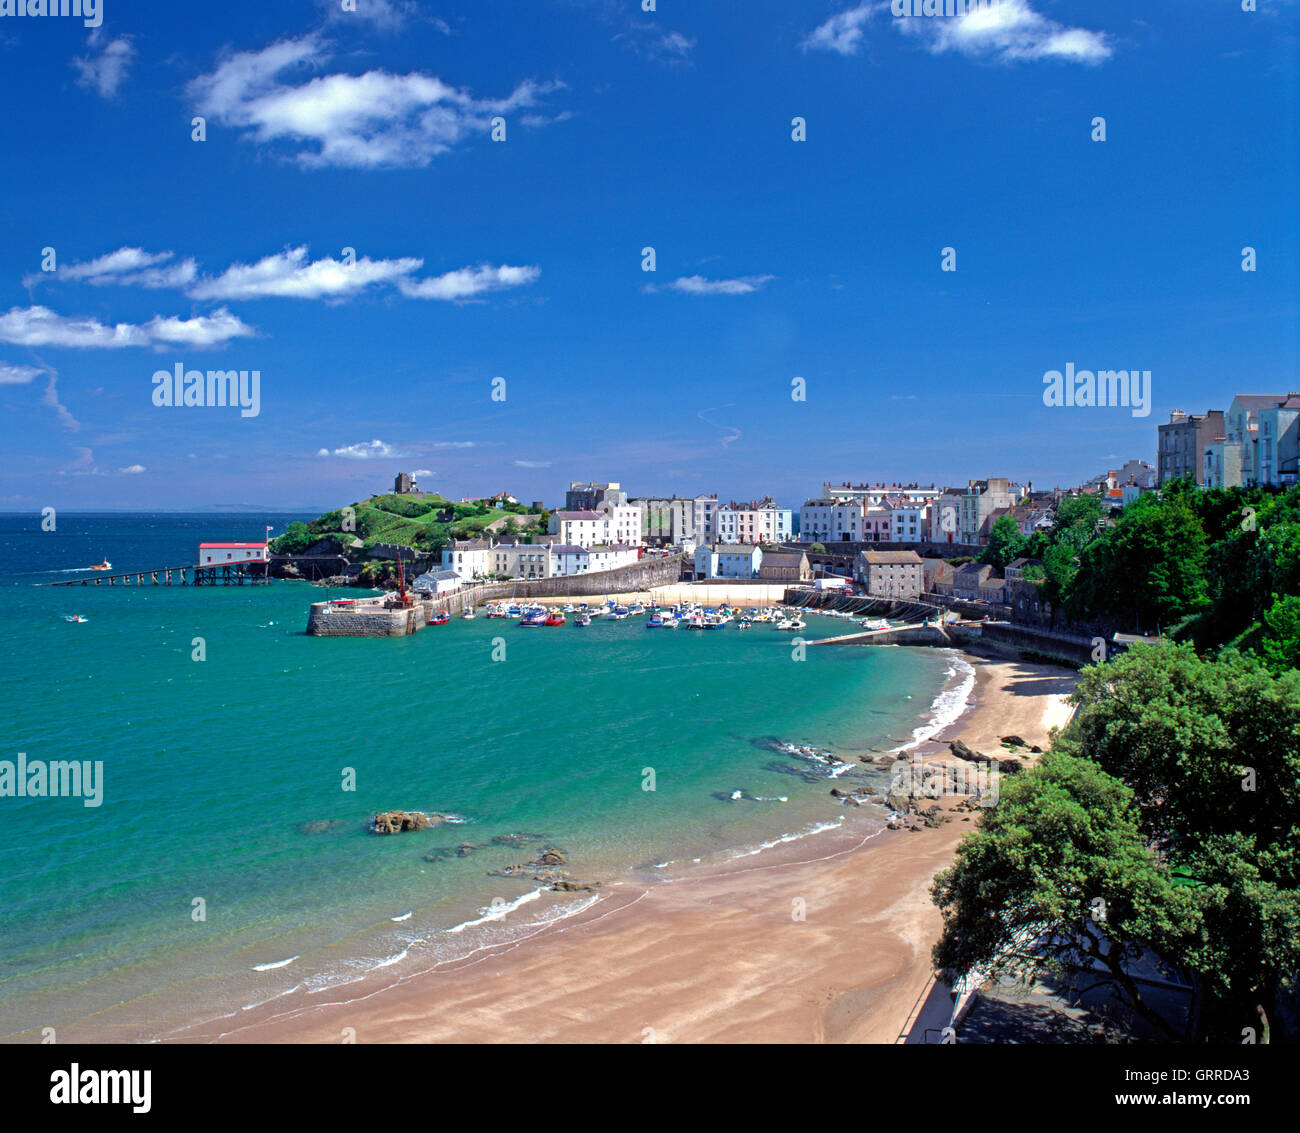 Tenby harbour and town, Pembrokeshire, Wales, UK - Stock Image